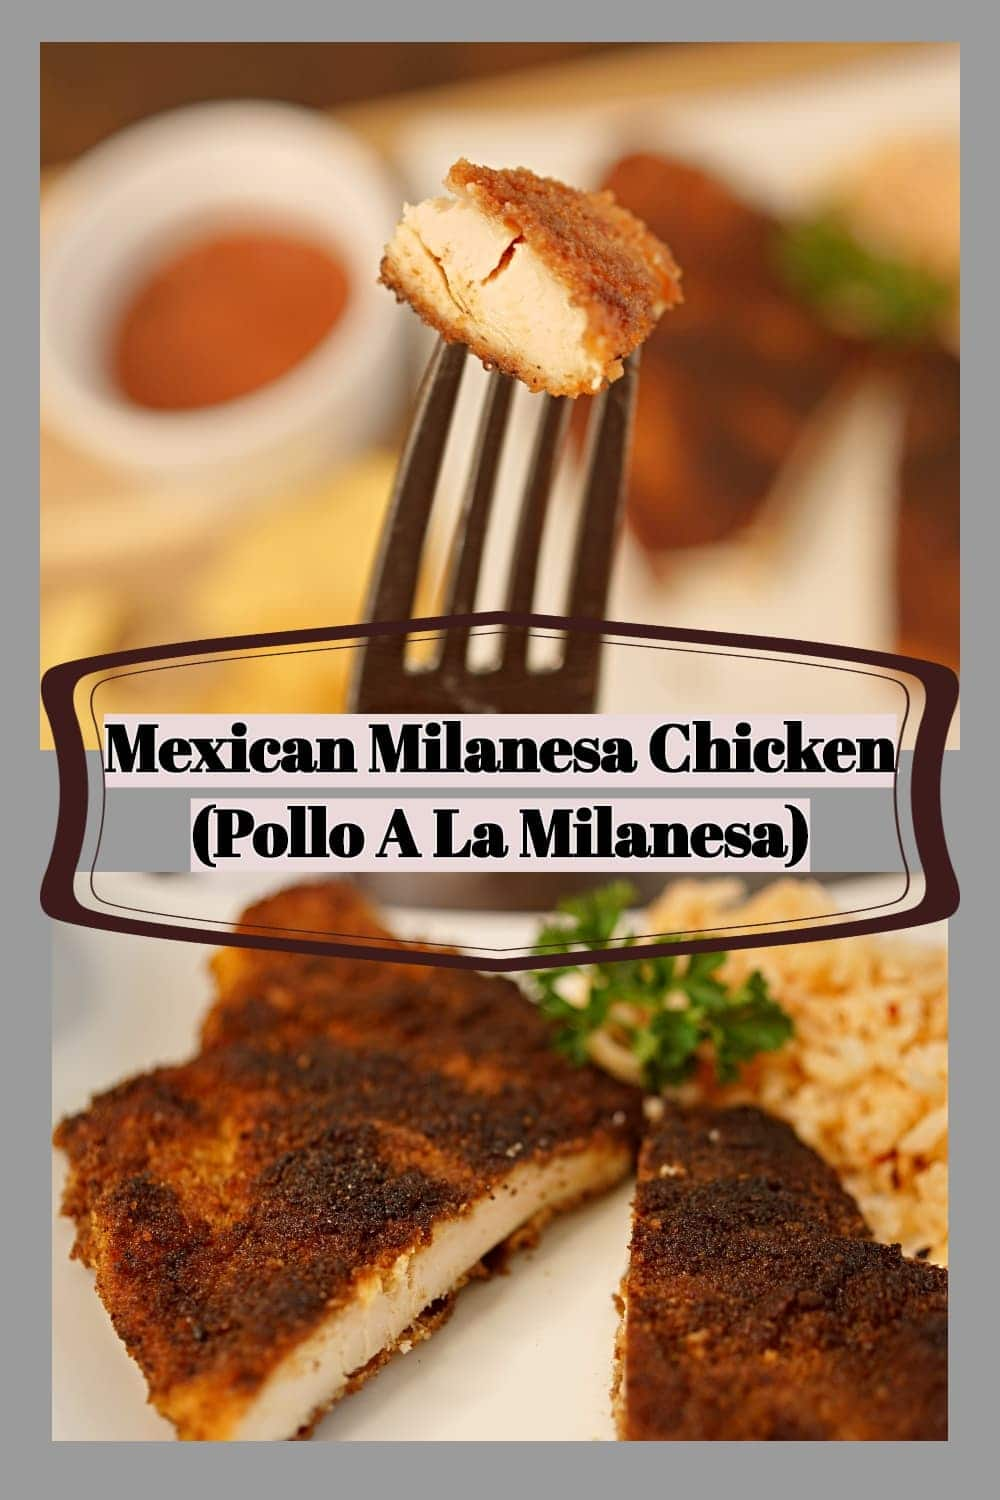 The Best Mexican Milanesa chicken (pollo a la milanesa) is a thin chicken cutlet that is breaded and pan fried. This Mexican Chicken recipe is typically served with rice and salsa.